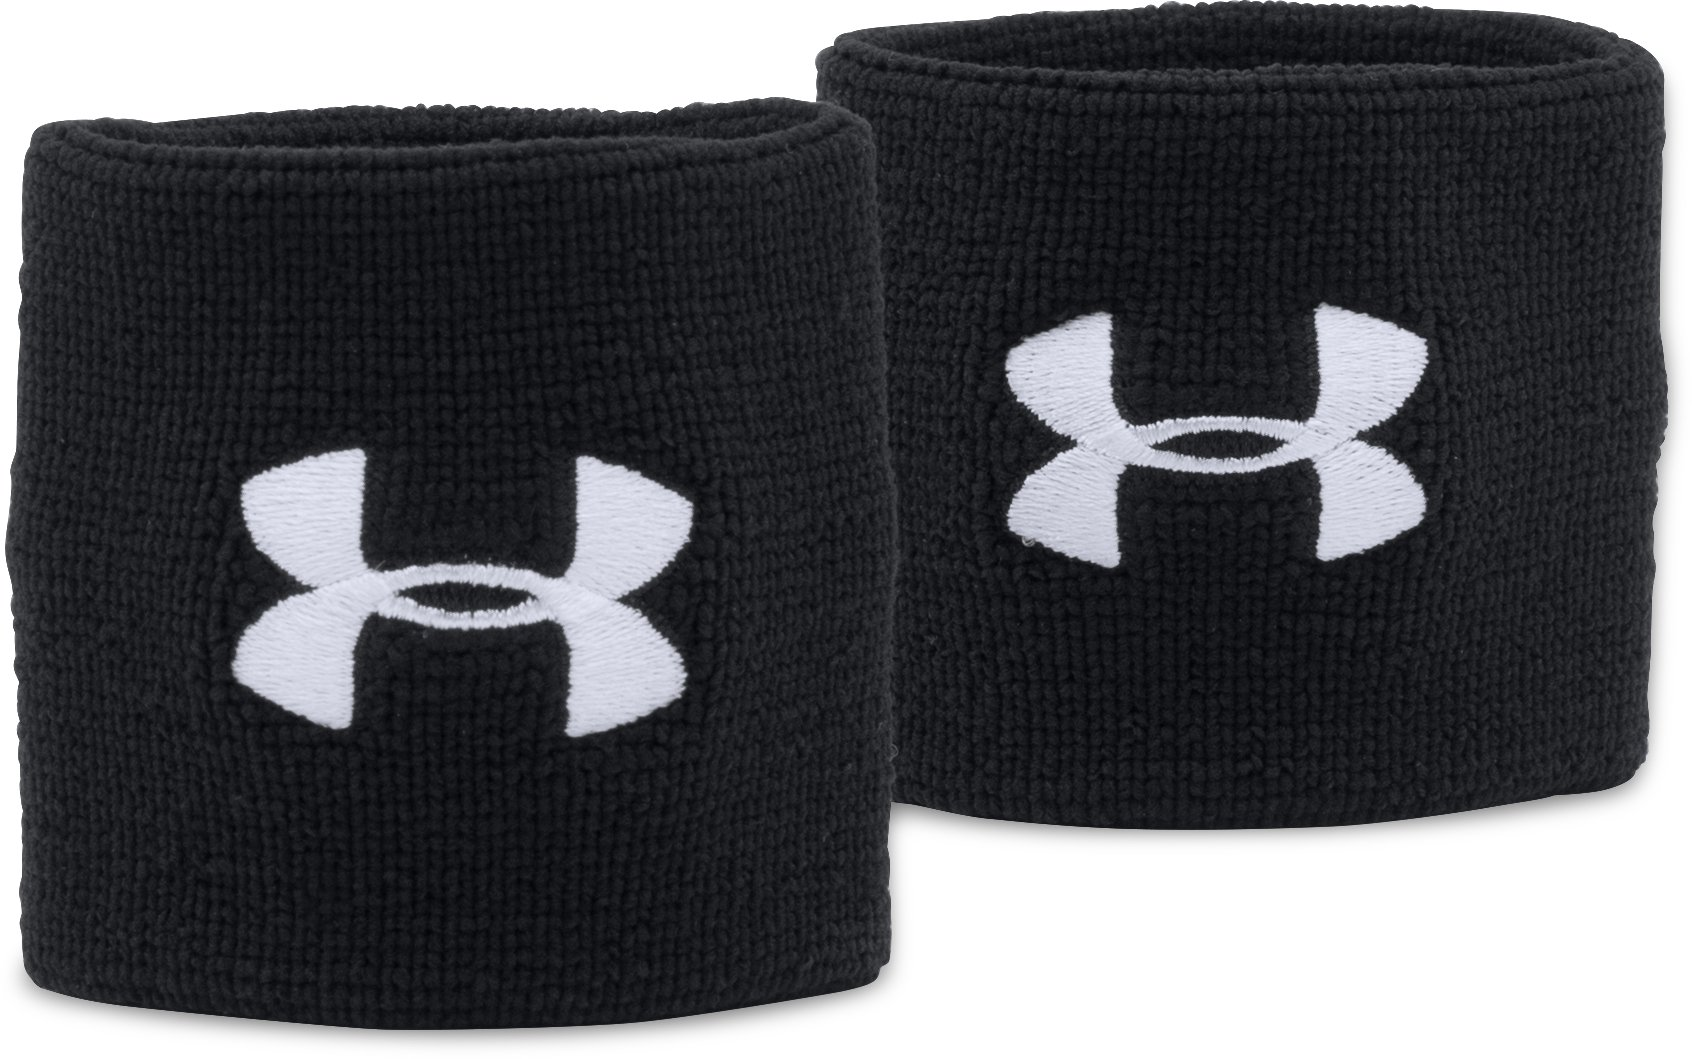 "fun wristbands Men's UA 3"" Performance Wristband – 2-Pack Nice fit and very light!...Works great for my sons football practice....very helpful."